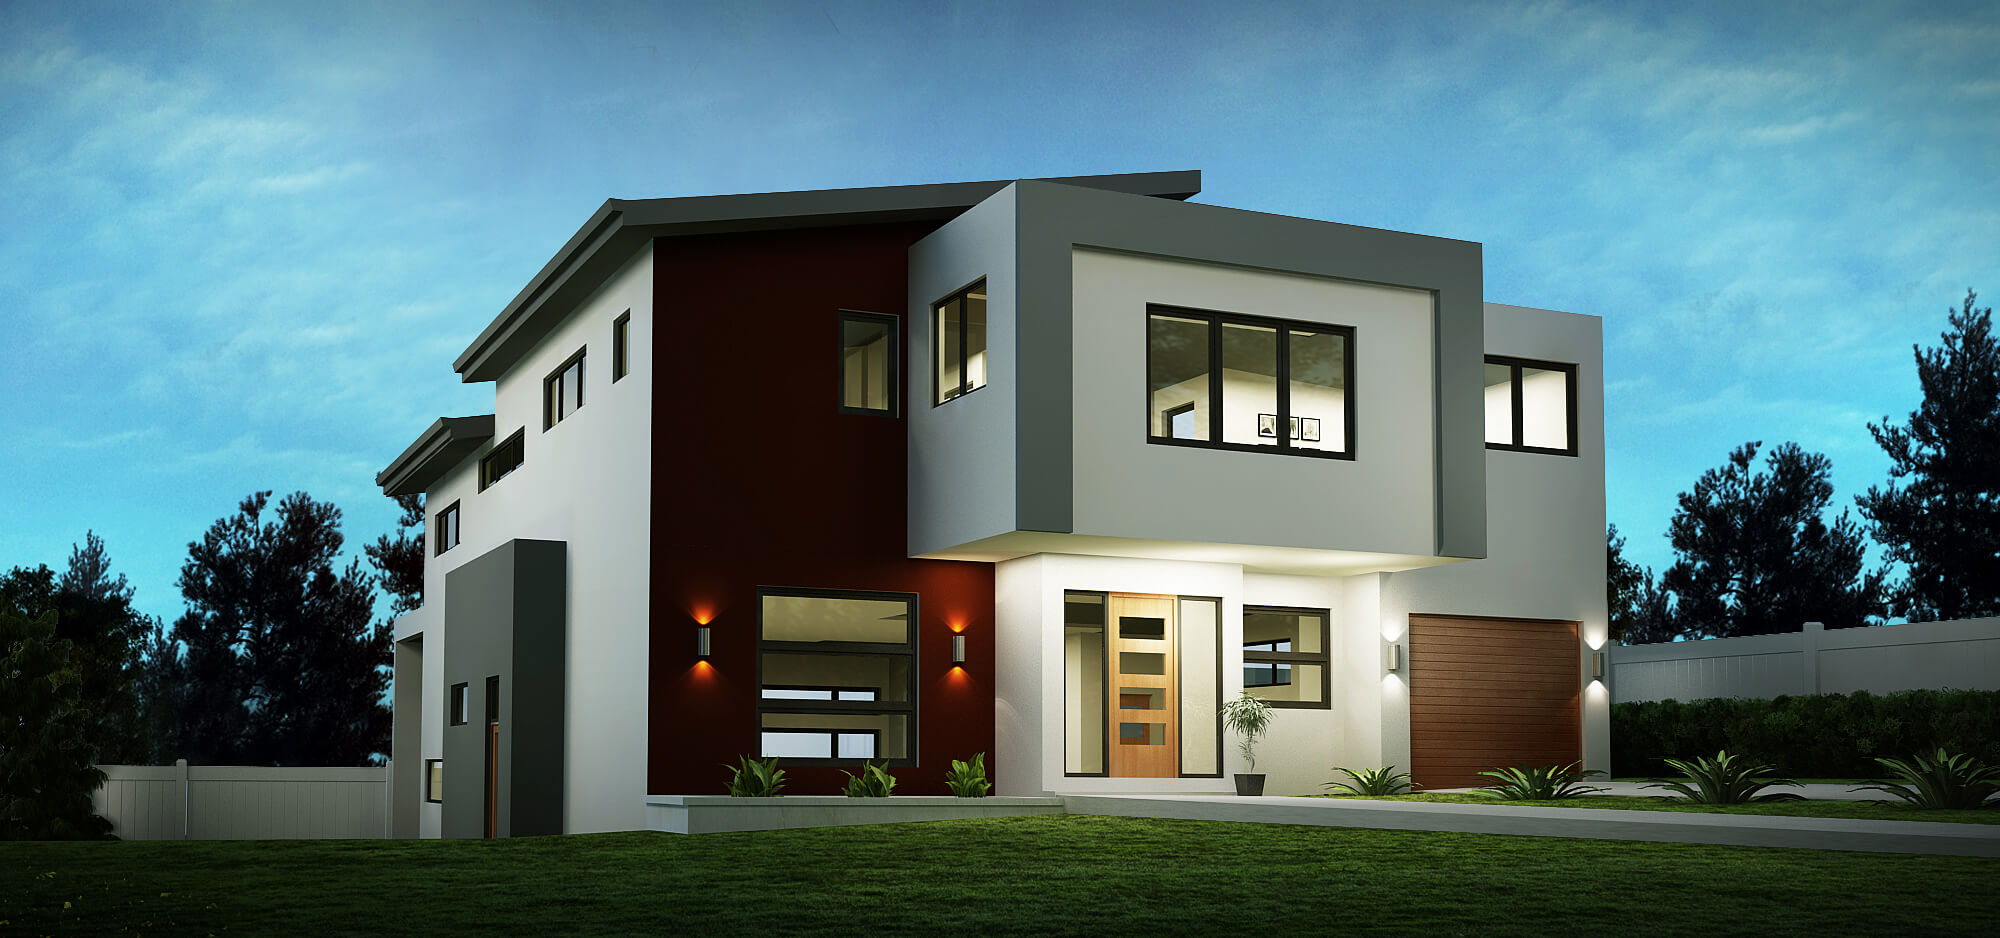 Sloping house block designs custom home designs for Custom home designs online